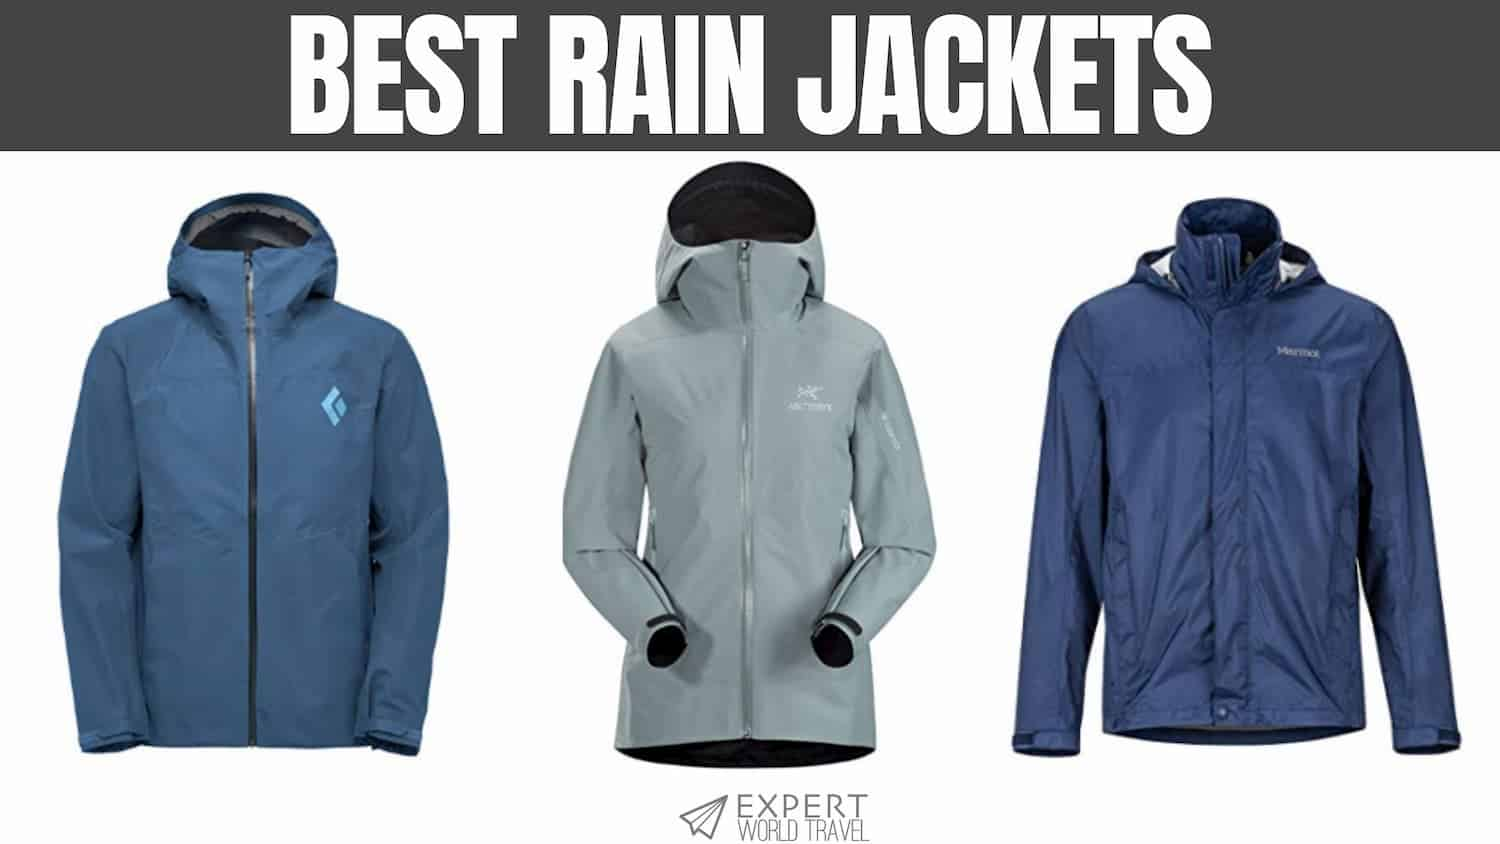 10 Best Rain Jackets in 2020 ⋆ Expert World Travel